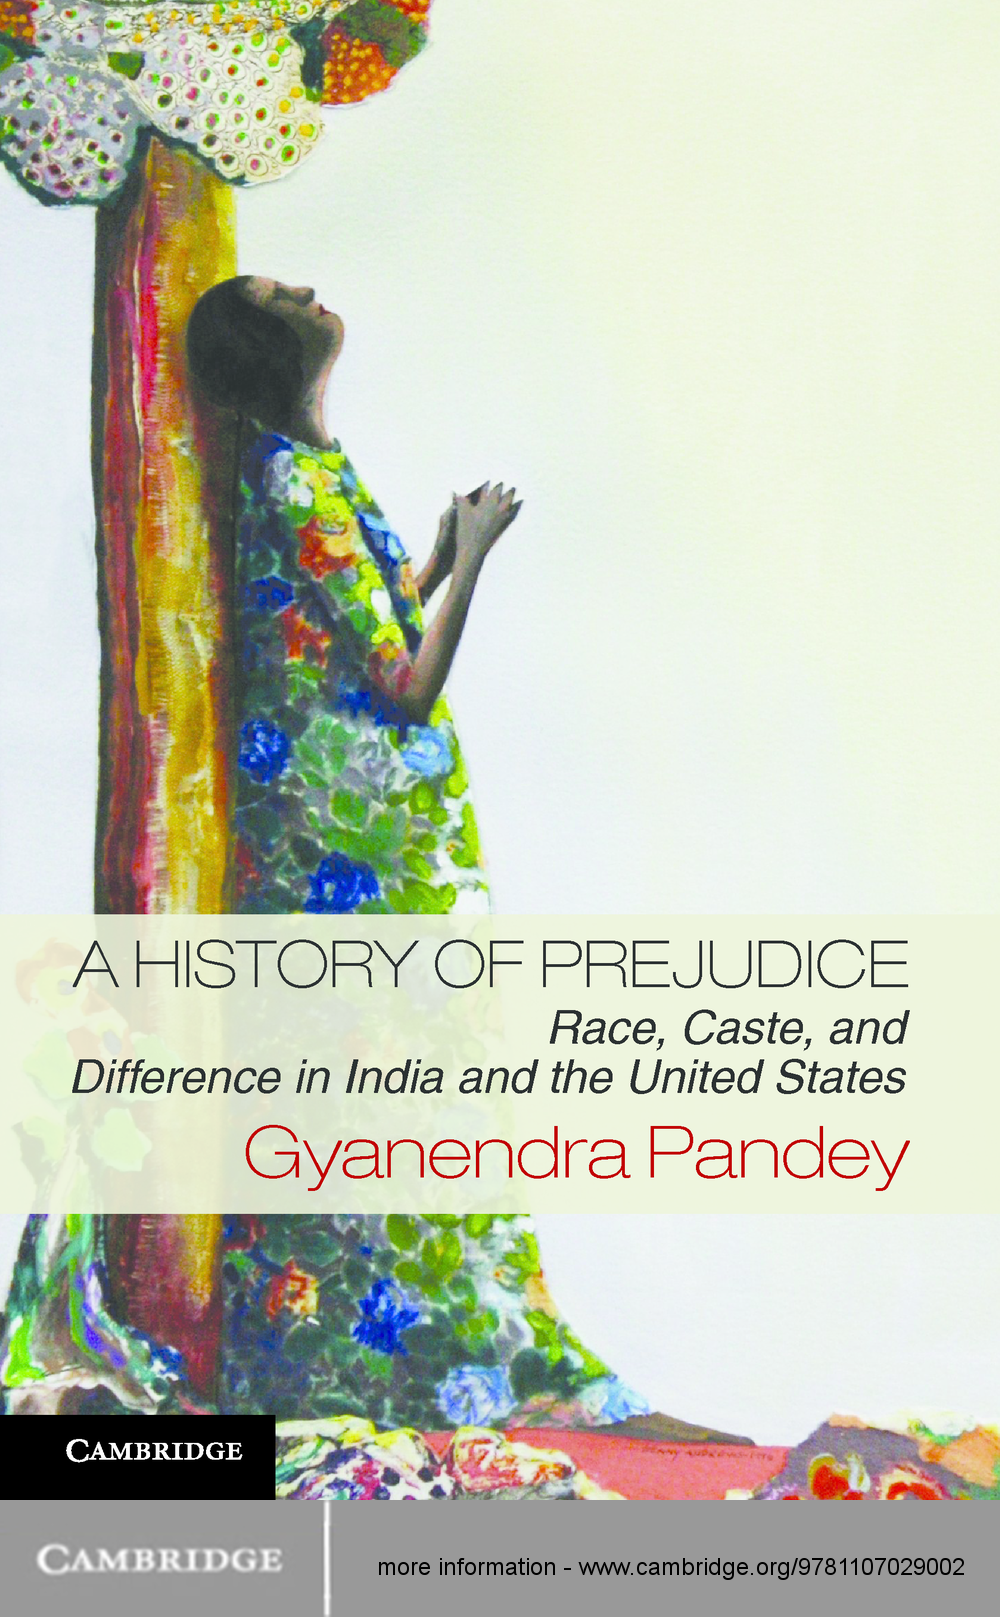 A History of Prejudice Race,  Caste,  and Difference in India and the United States